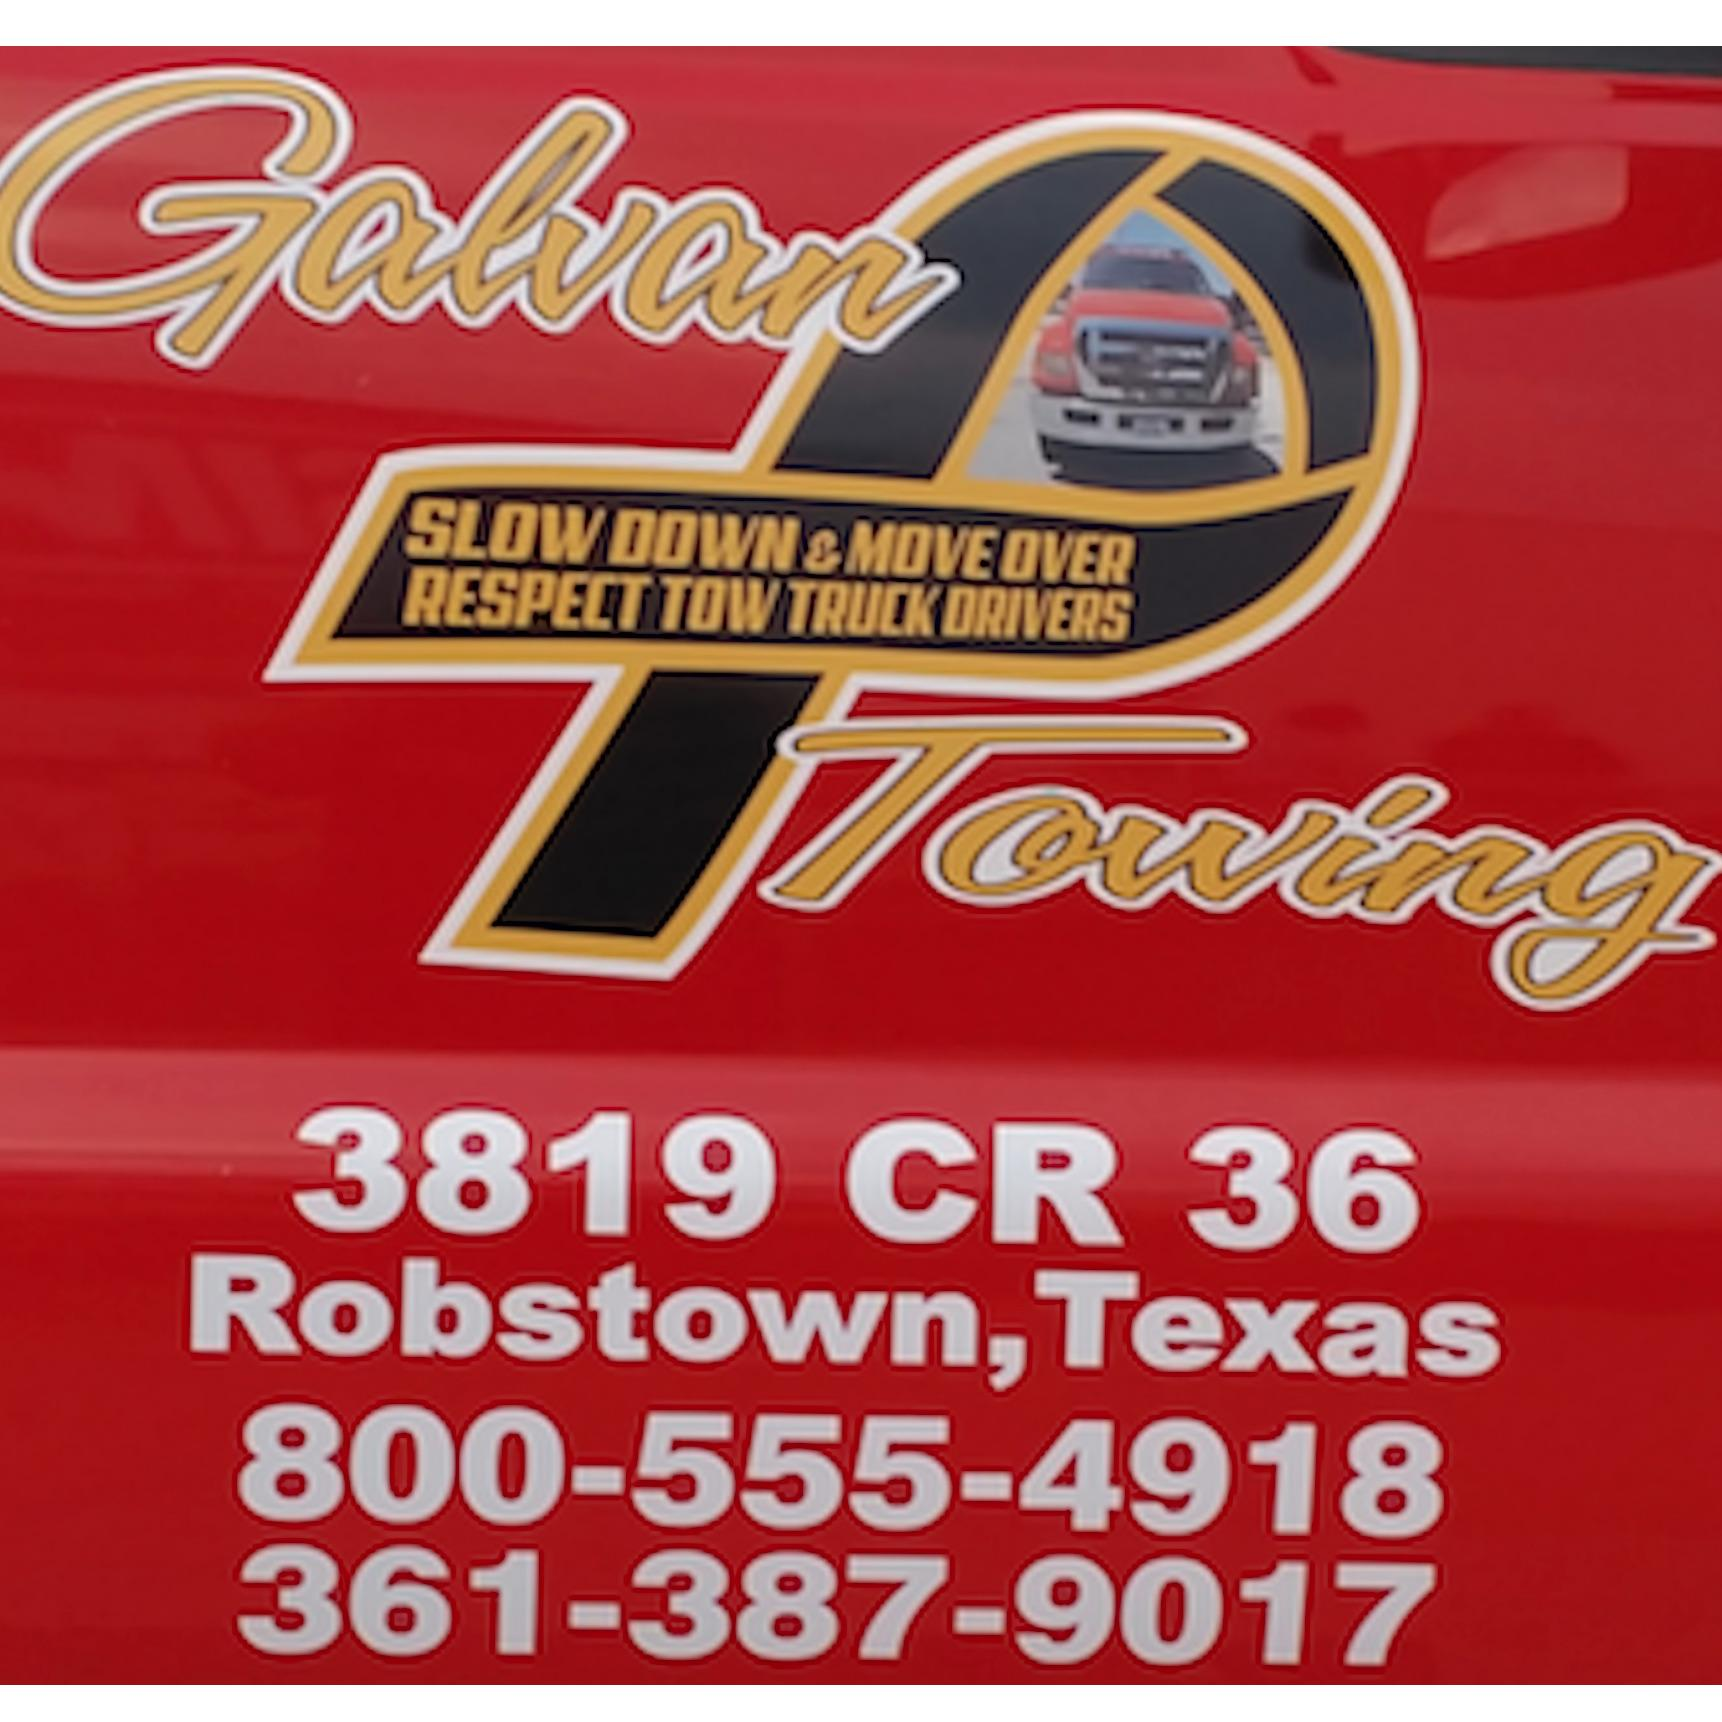 Galvan Towing/J.V. Towing